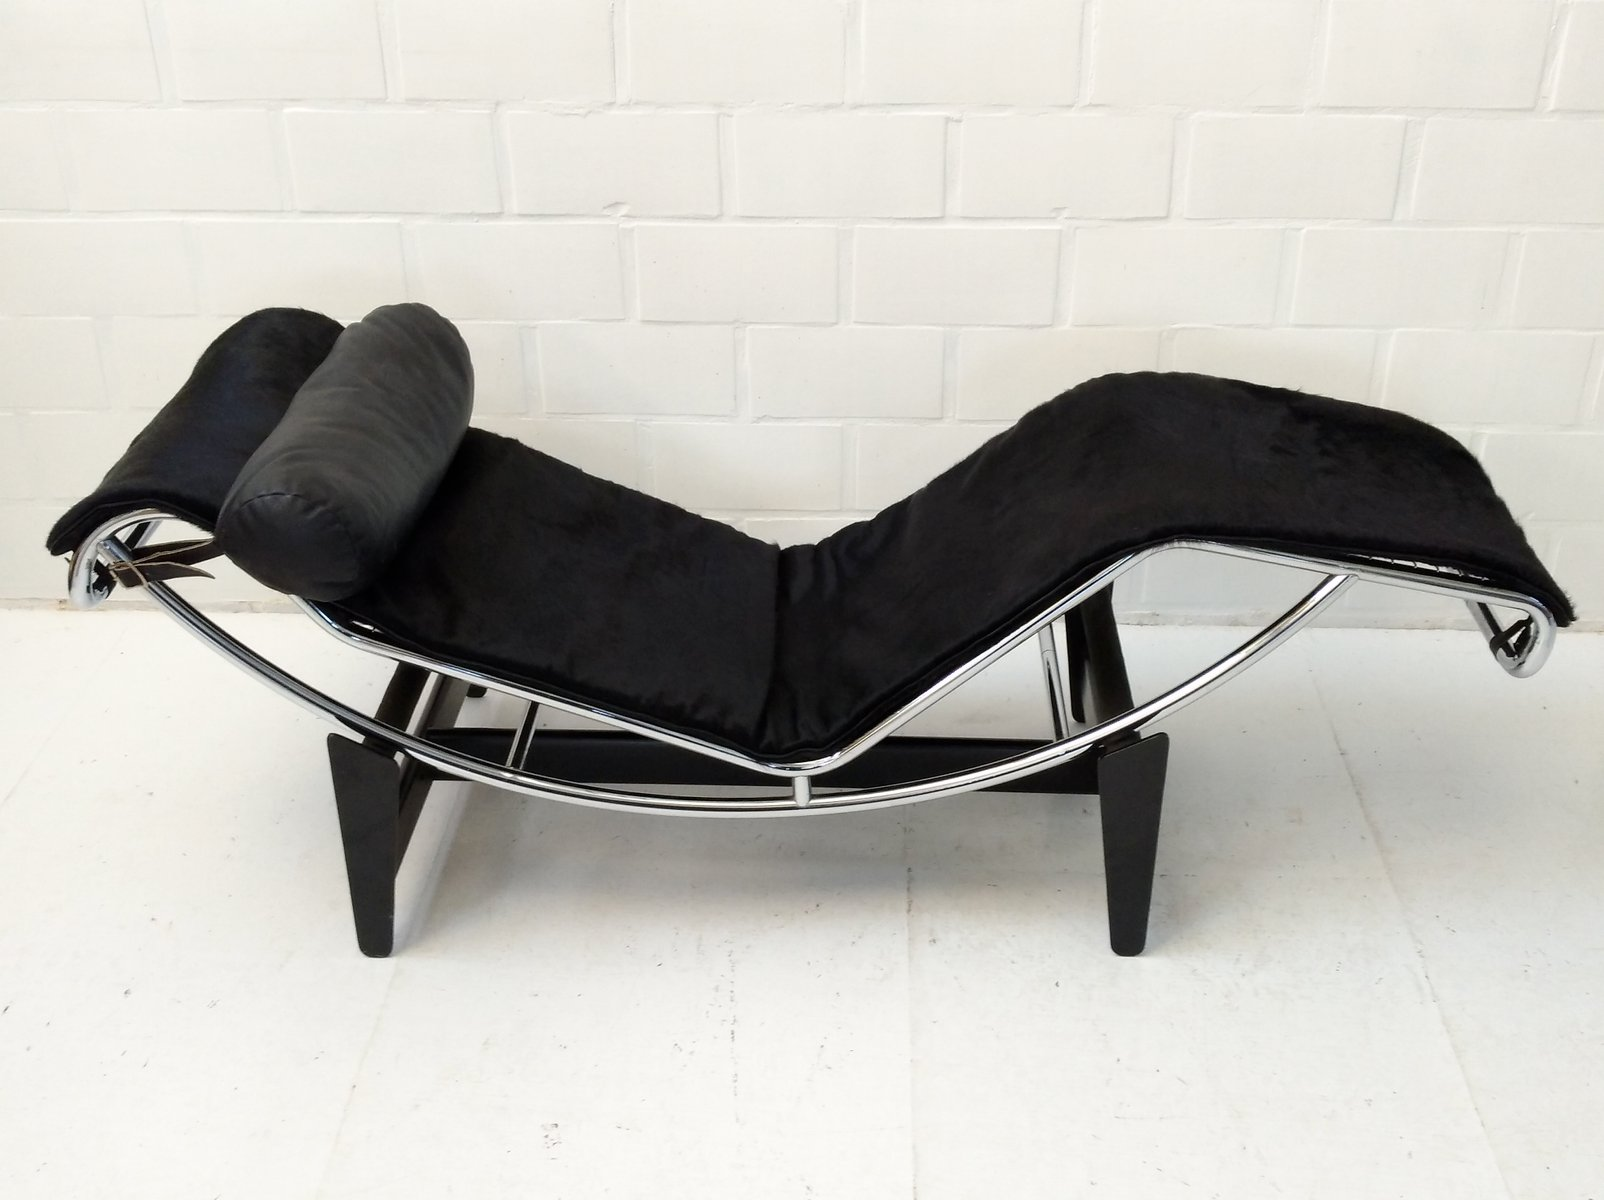 Early lc4 chaise longue by le corbusier perriand for Chaise longue design le corbusier